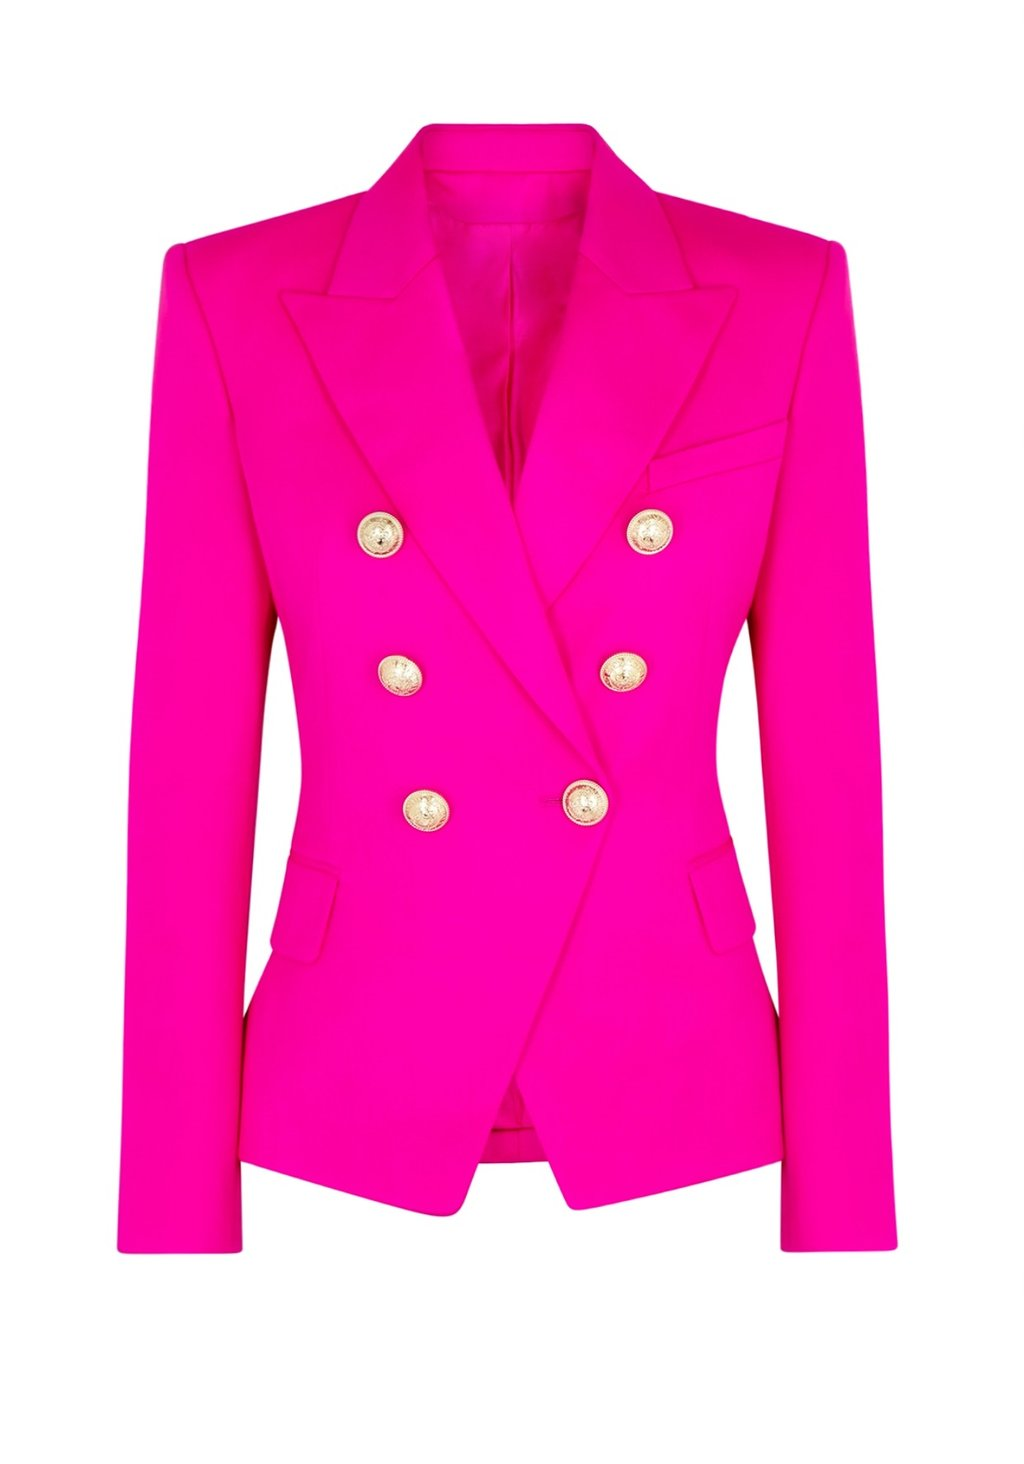 Limited Neon Electric Pink Blazer